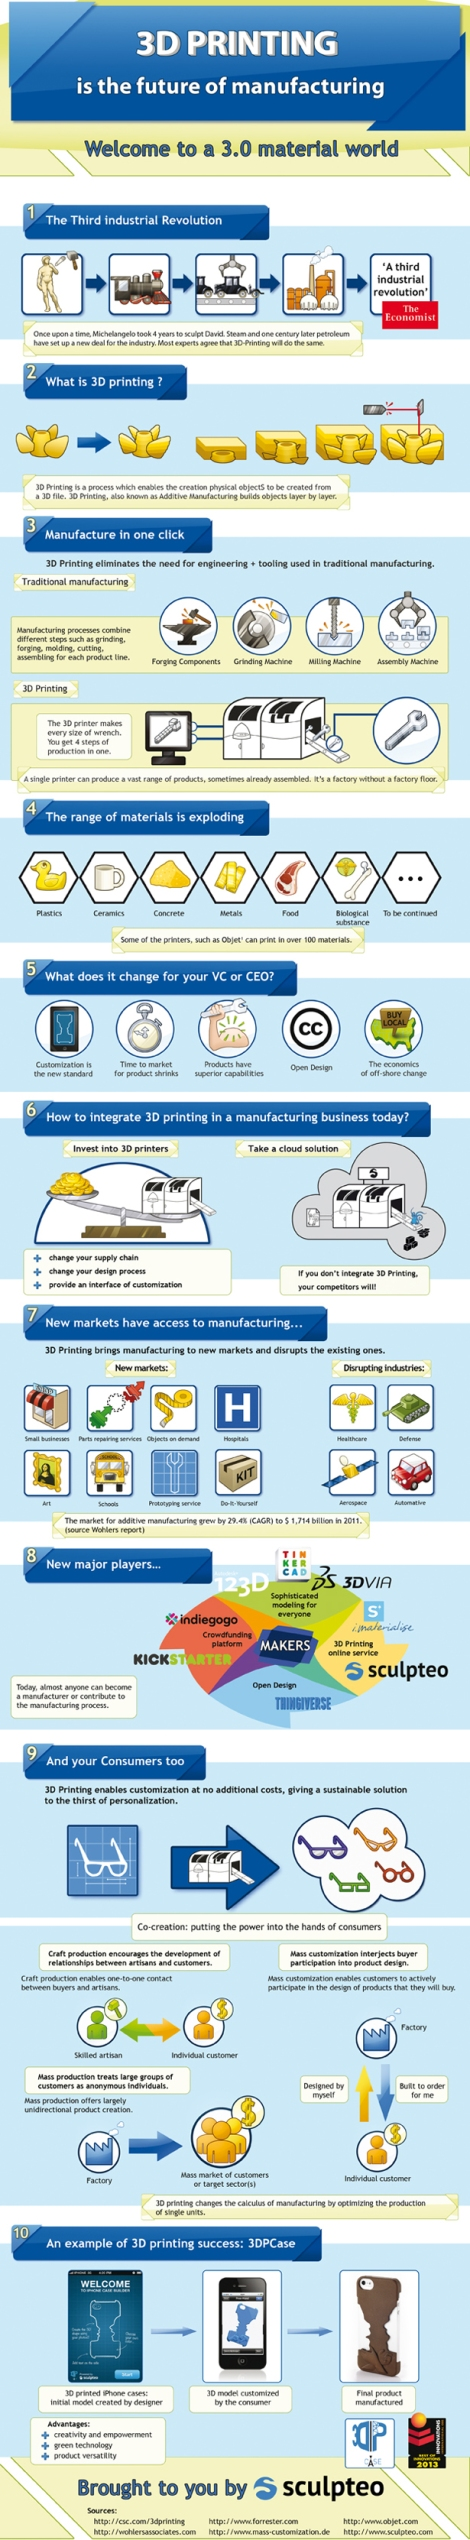 3D-Printing-Infographic-Future-of-Manufacturing